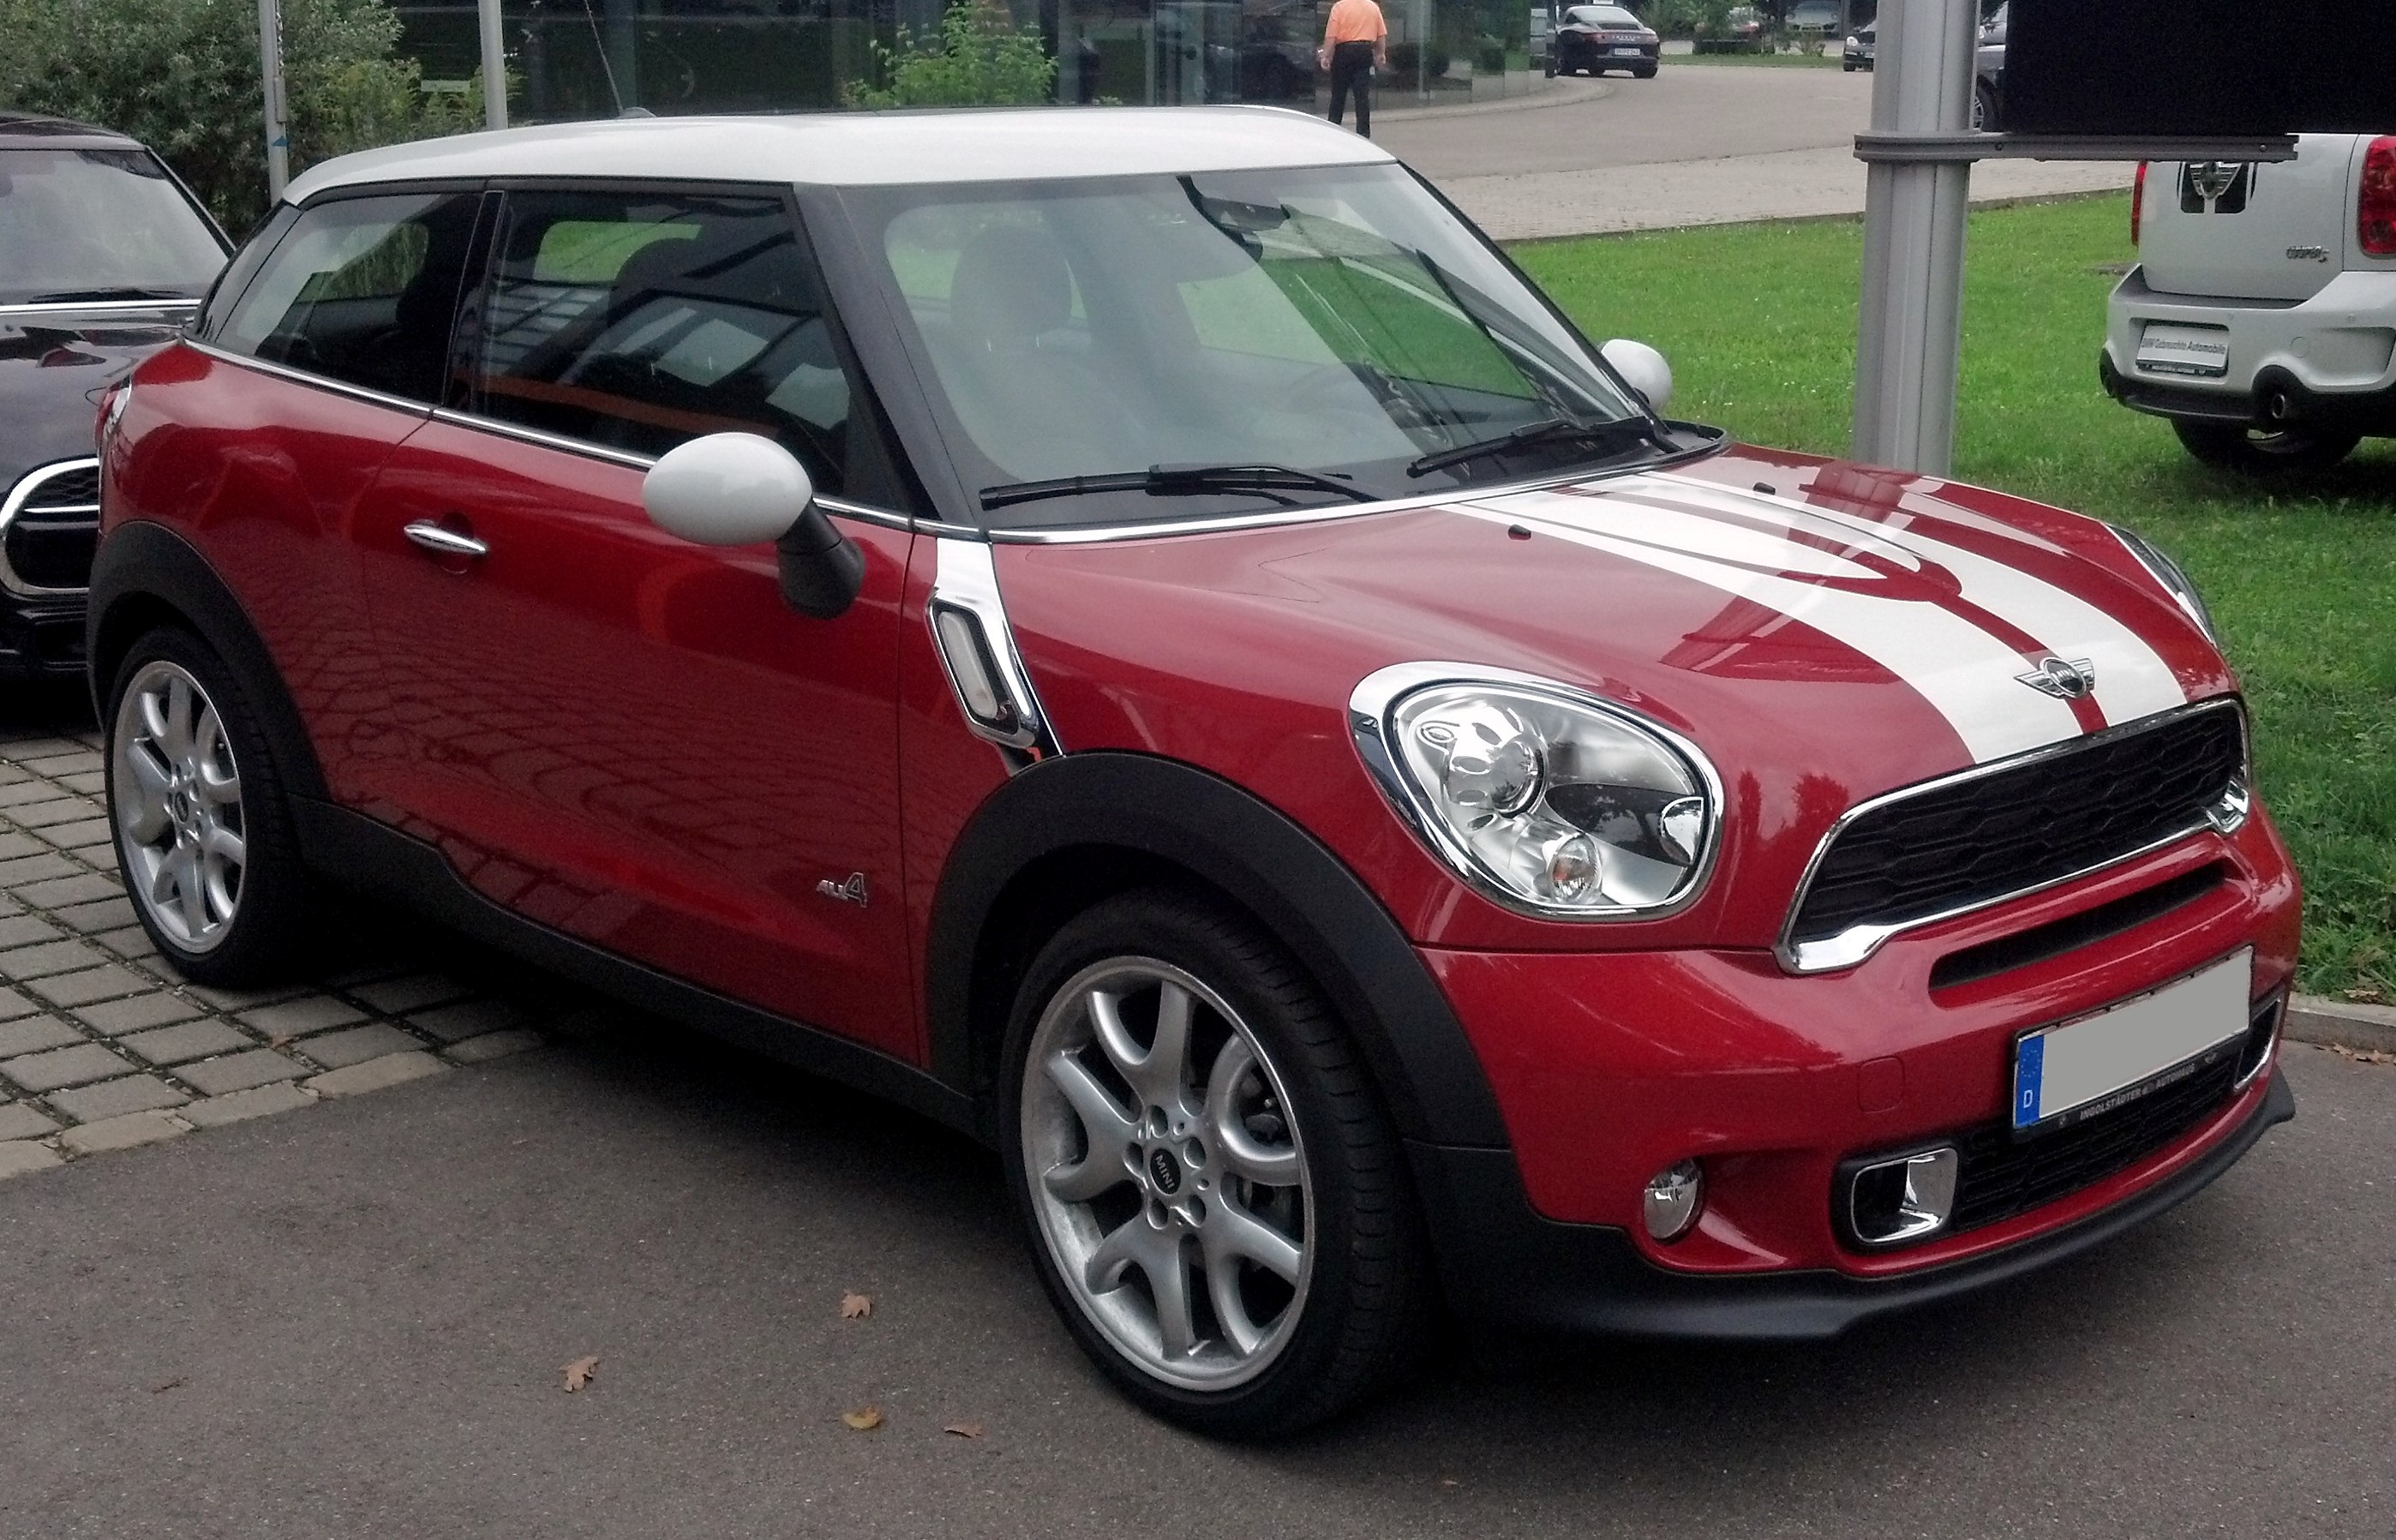 file mini cooper sd paceman wikimedia commons. Black Bedroom Furniture Sets. Home Design Ideas